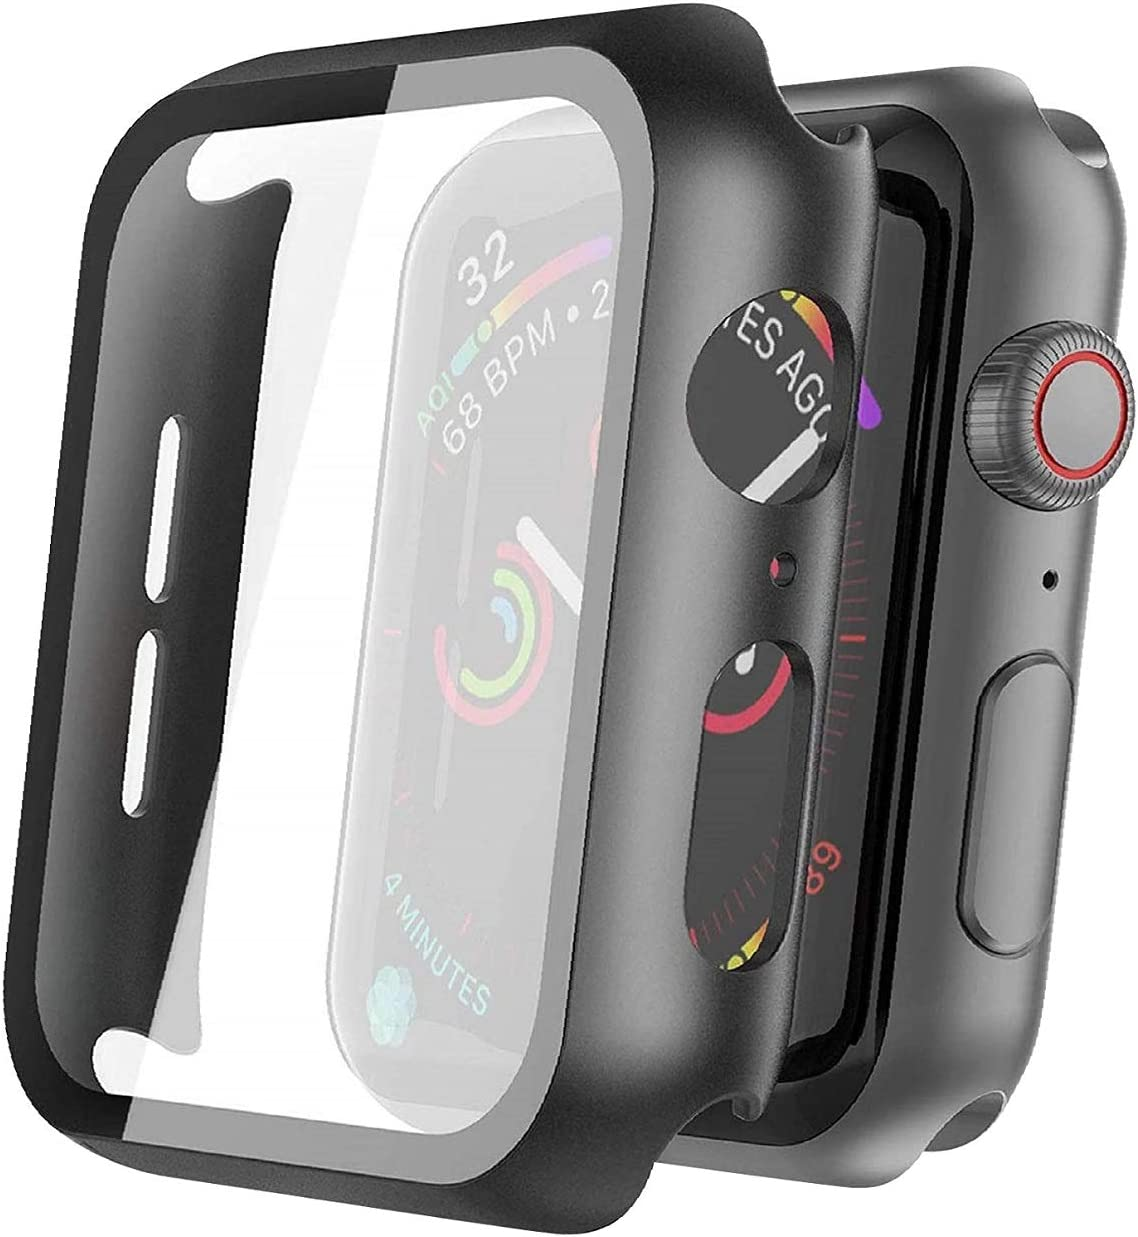 Apple Watch ScreenProtector, Hard PC Case with HD Clear Tempered Glass Screen Protector, Overall Protective Cover Compatible with Apple Watch Series 6 SE Series 5 Series 4 40mm (Black)